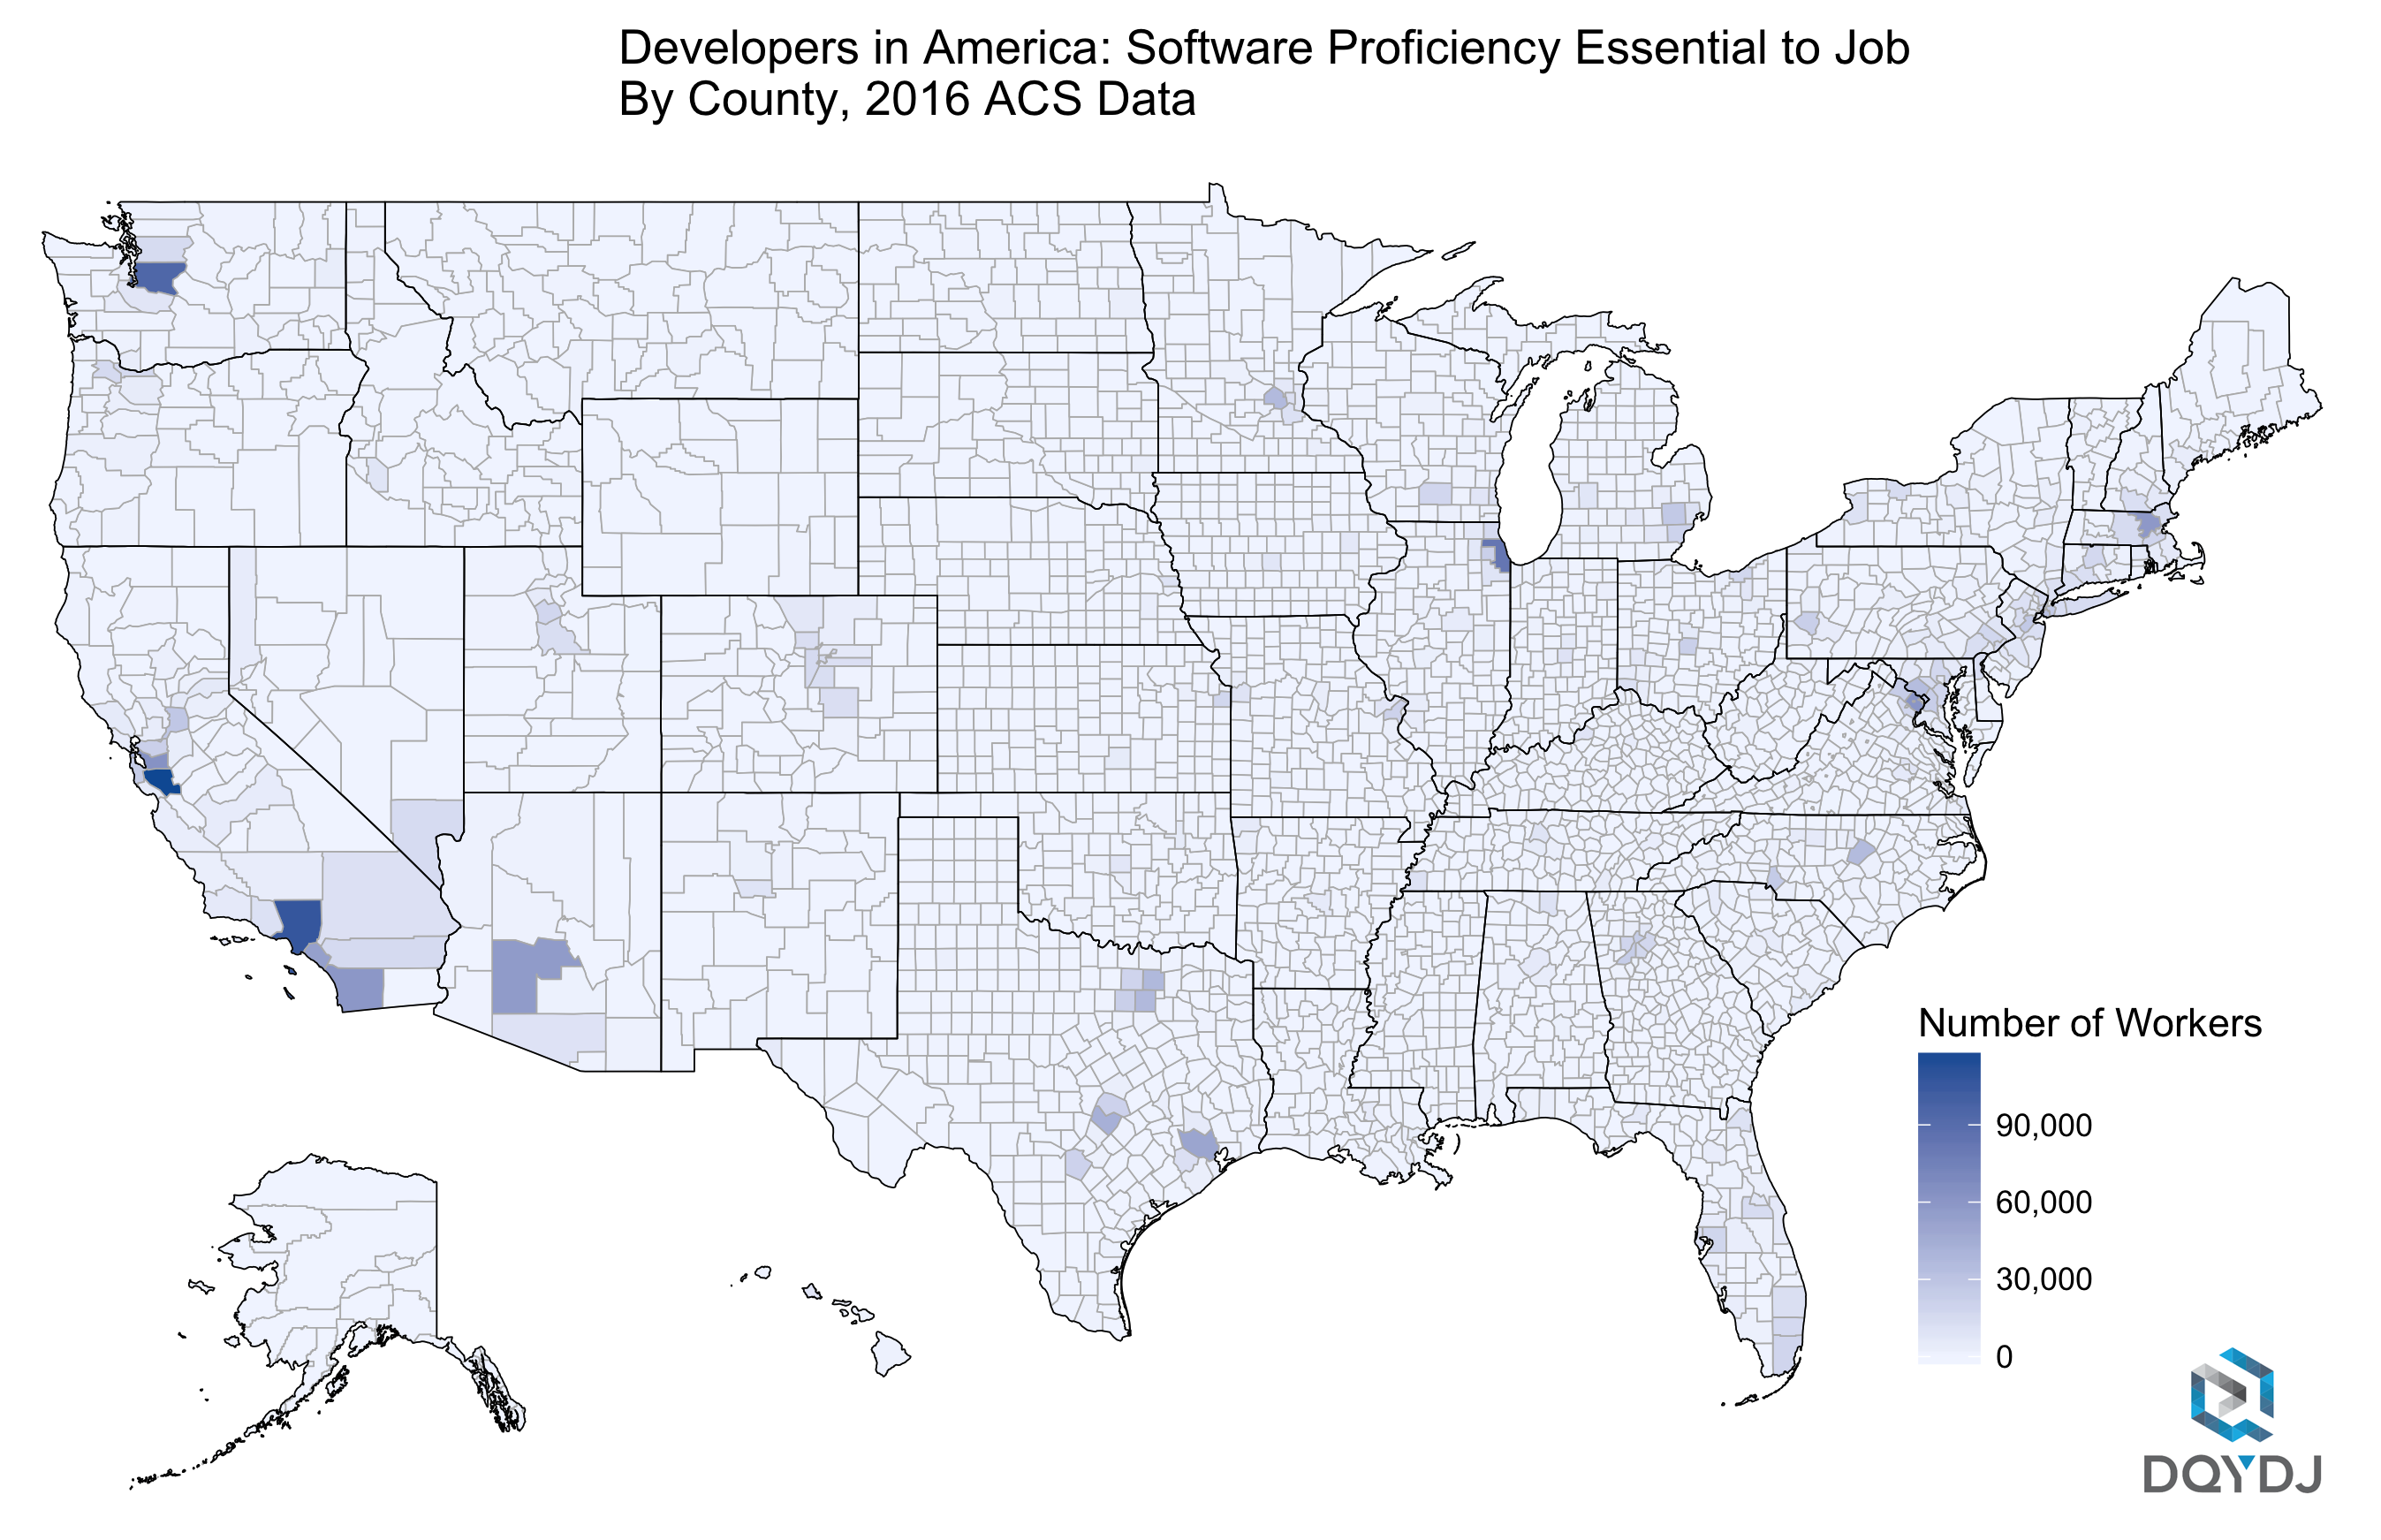 Number of Developers per County in 2016